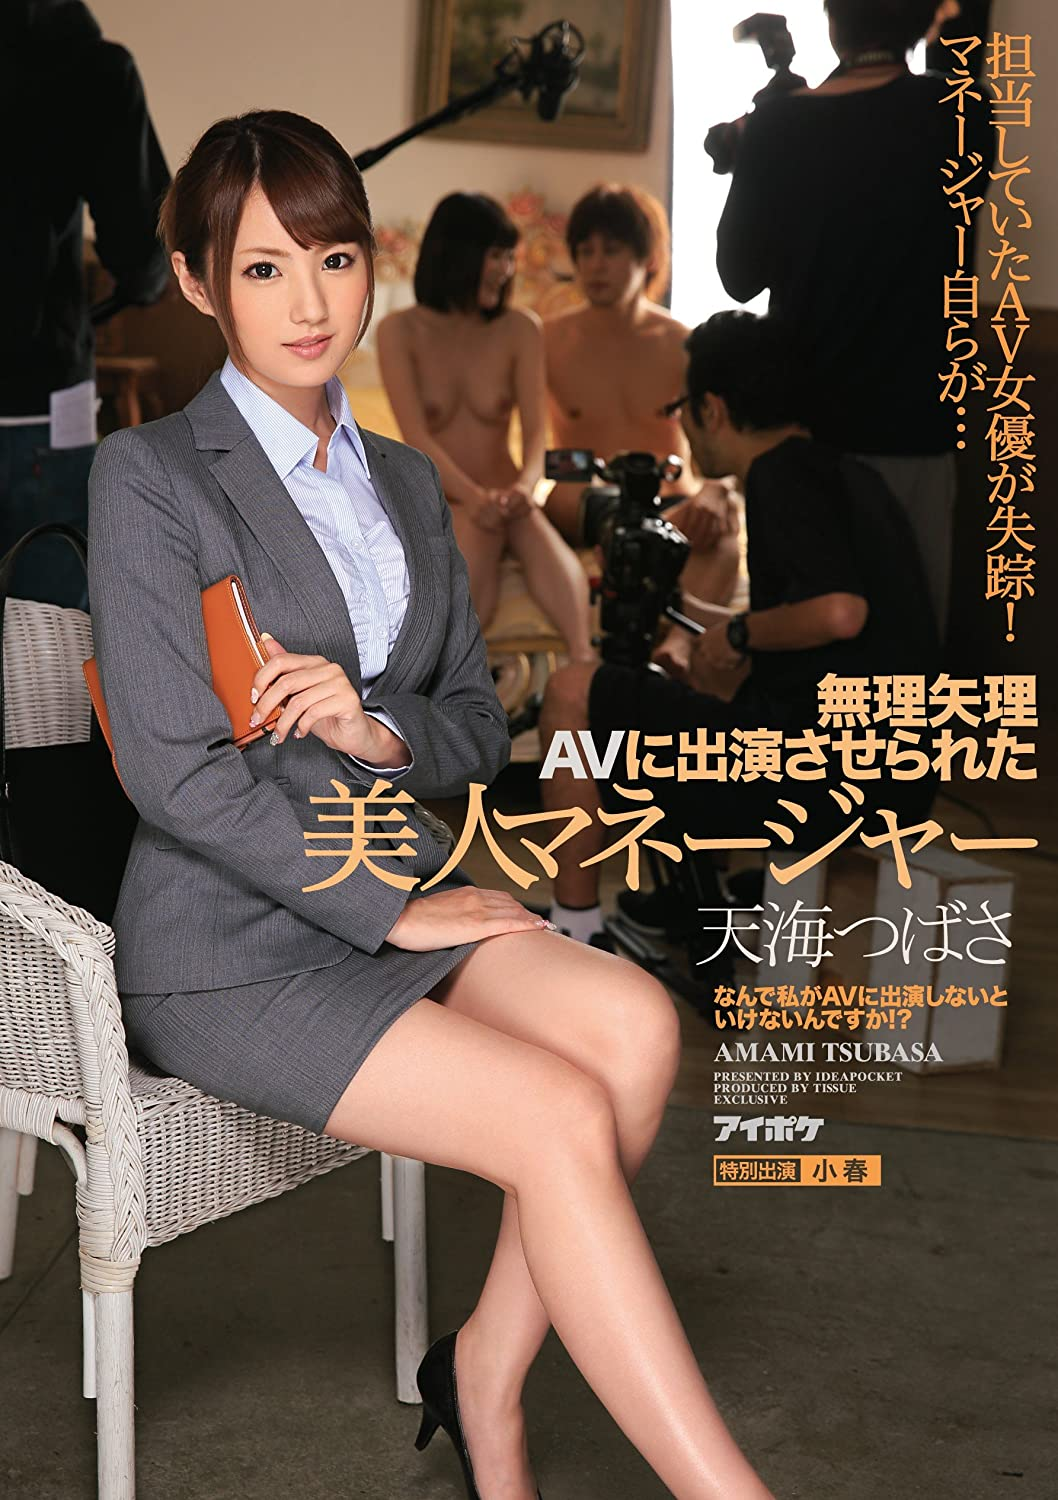 [IPZ-587] (English subbed) Hot Manager Forced Into Her Porn Debut Tsubasa Amami